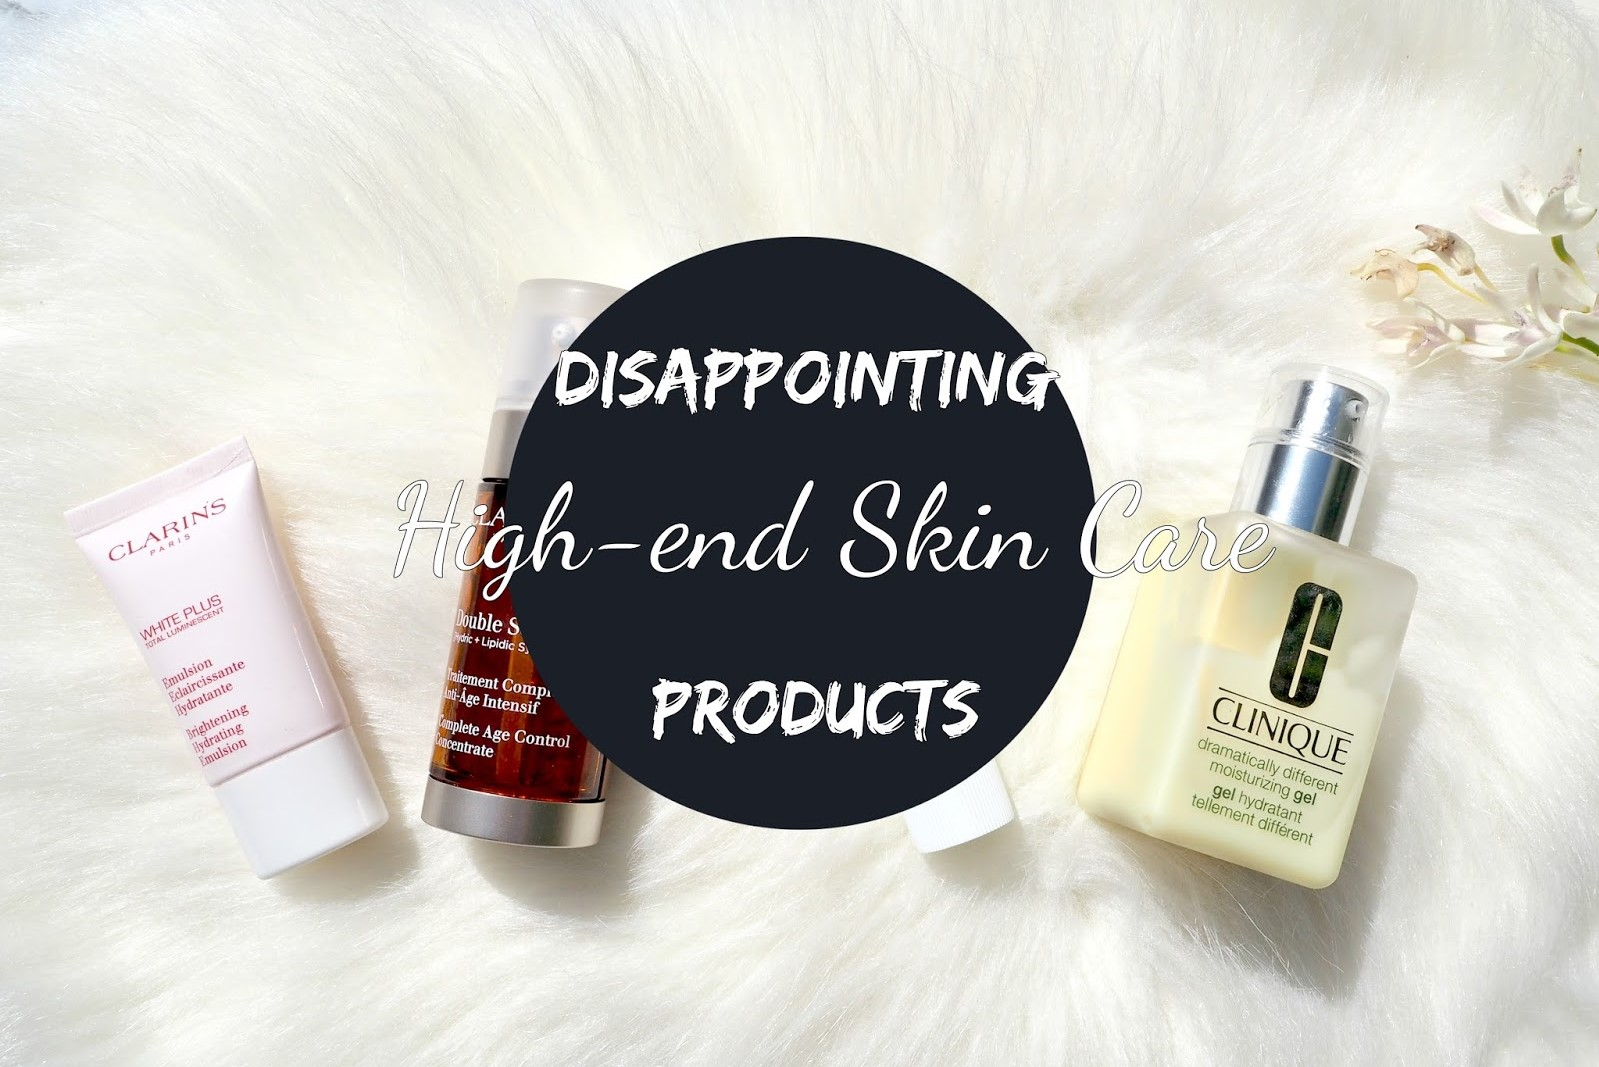 Disappointing Skin Care Products 2017 : www.poshmakeupnstuff.blogspot.com